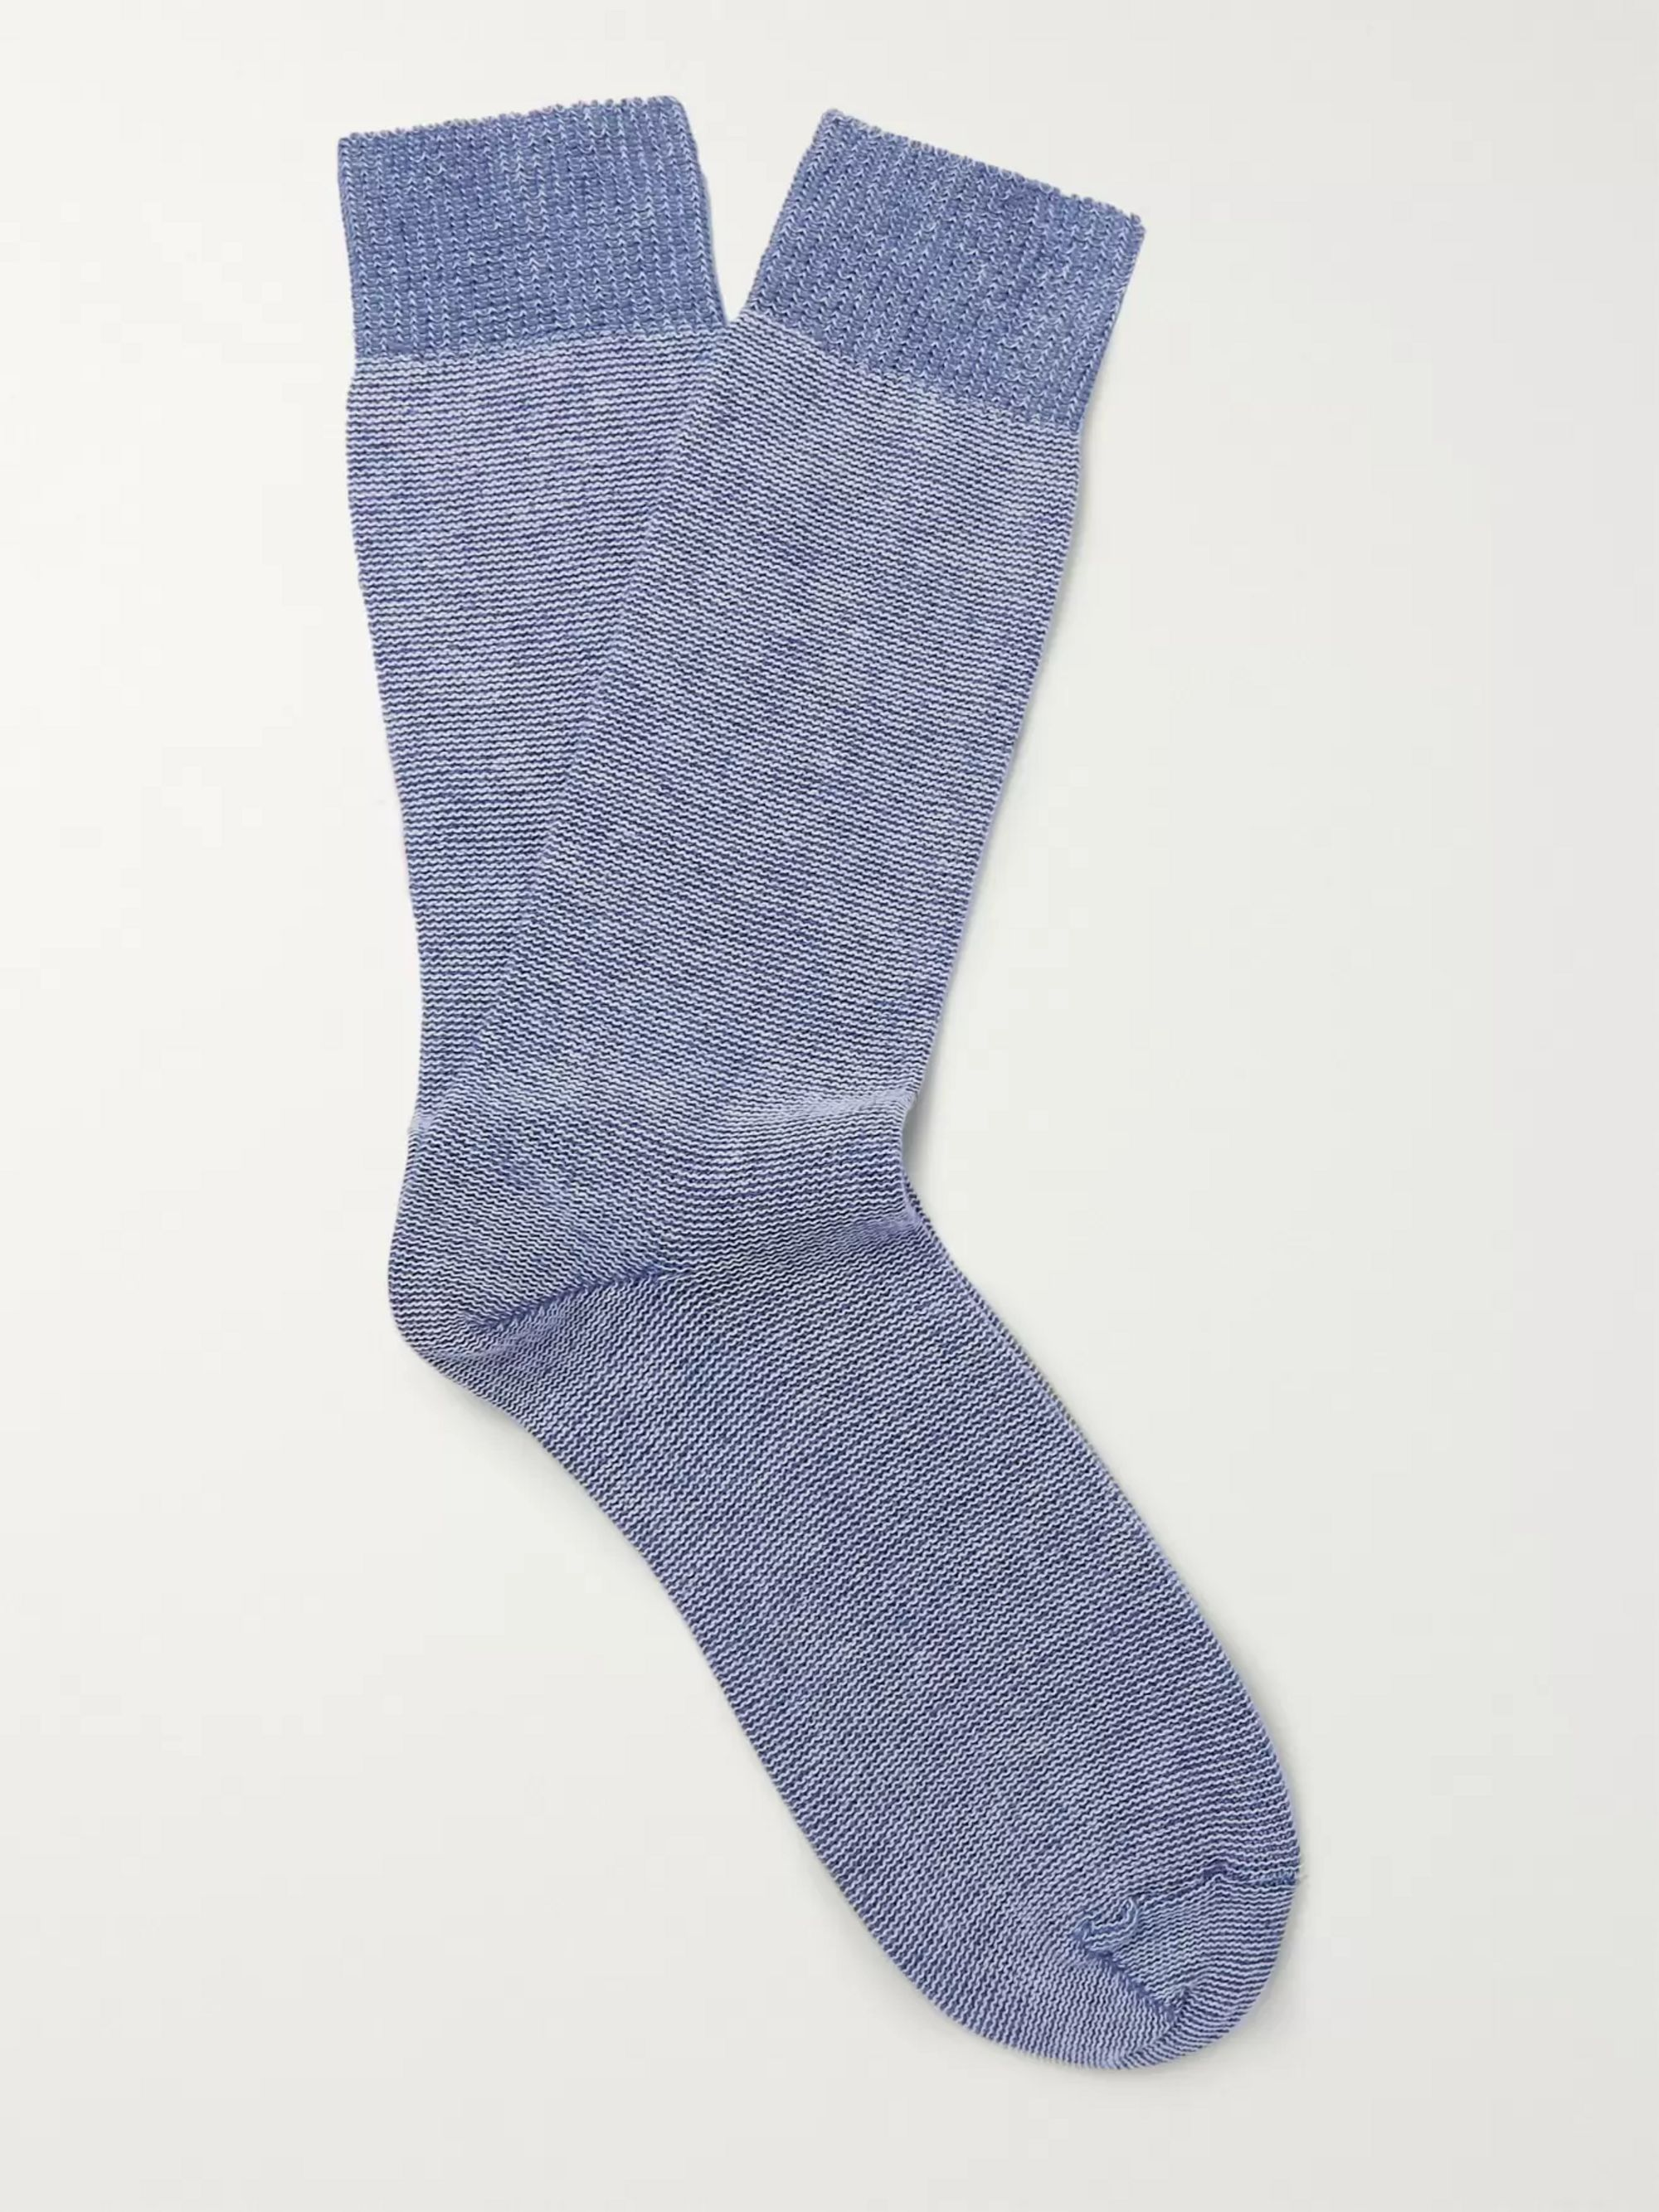 The Workers Club Mélange Cotton-Blend Socks